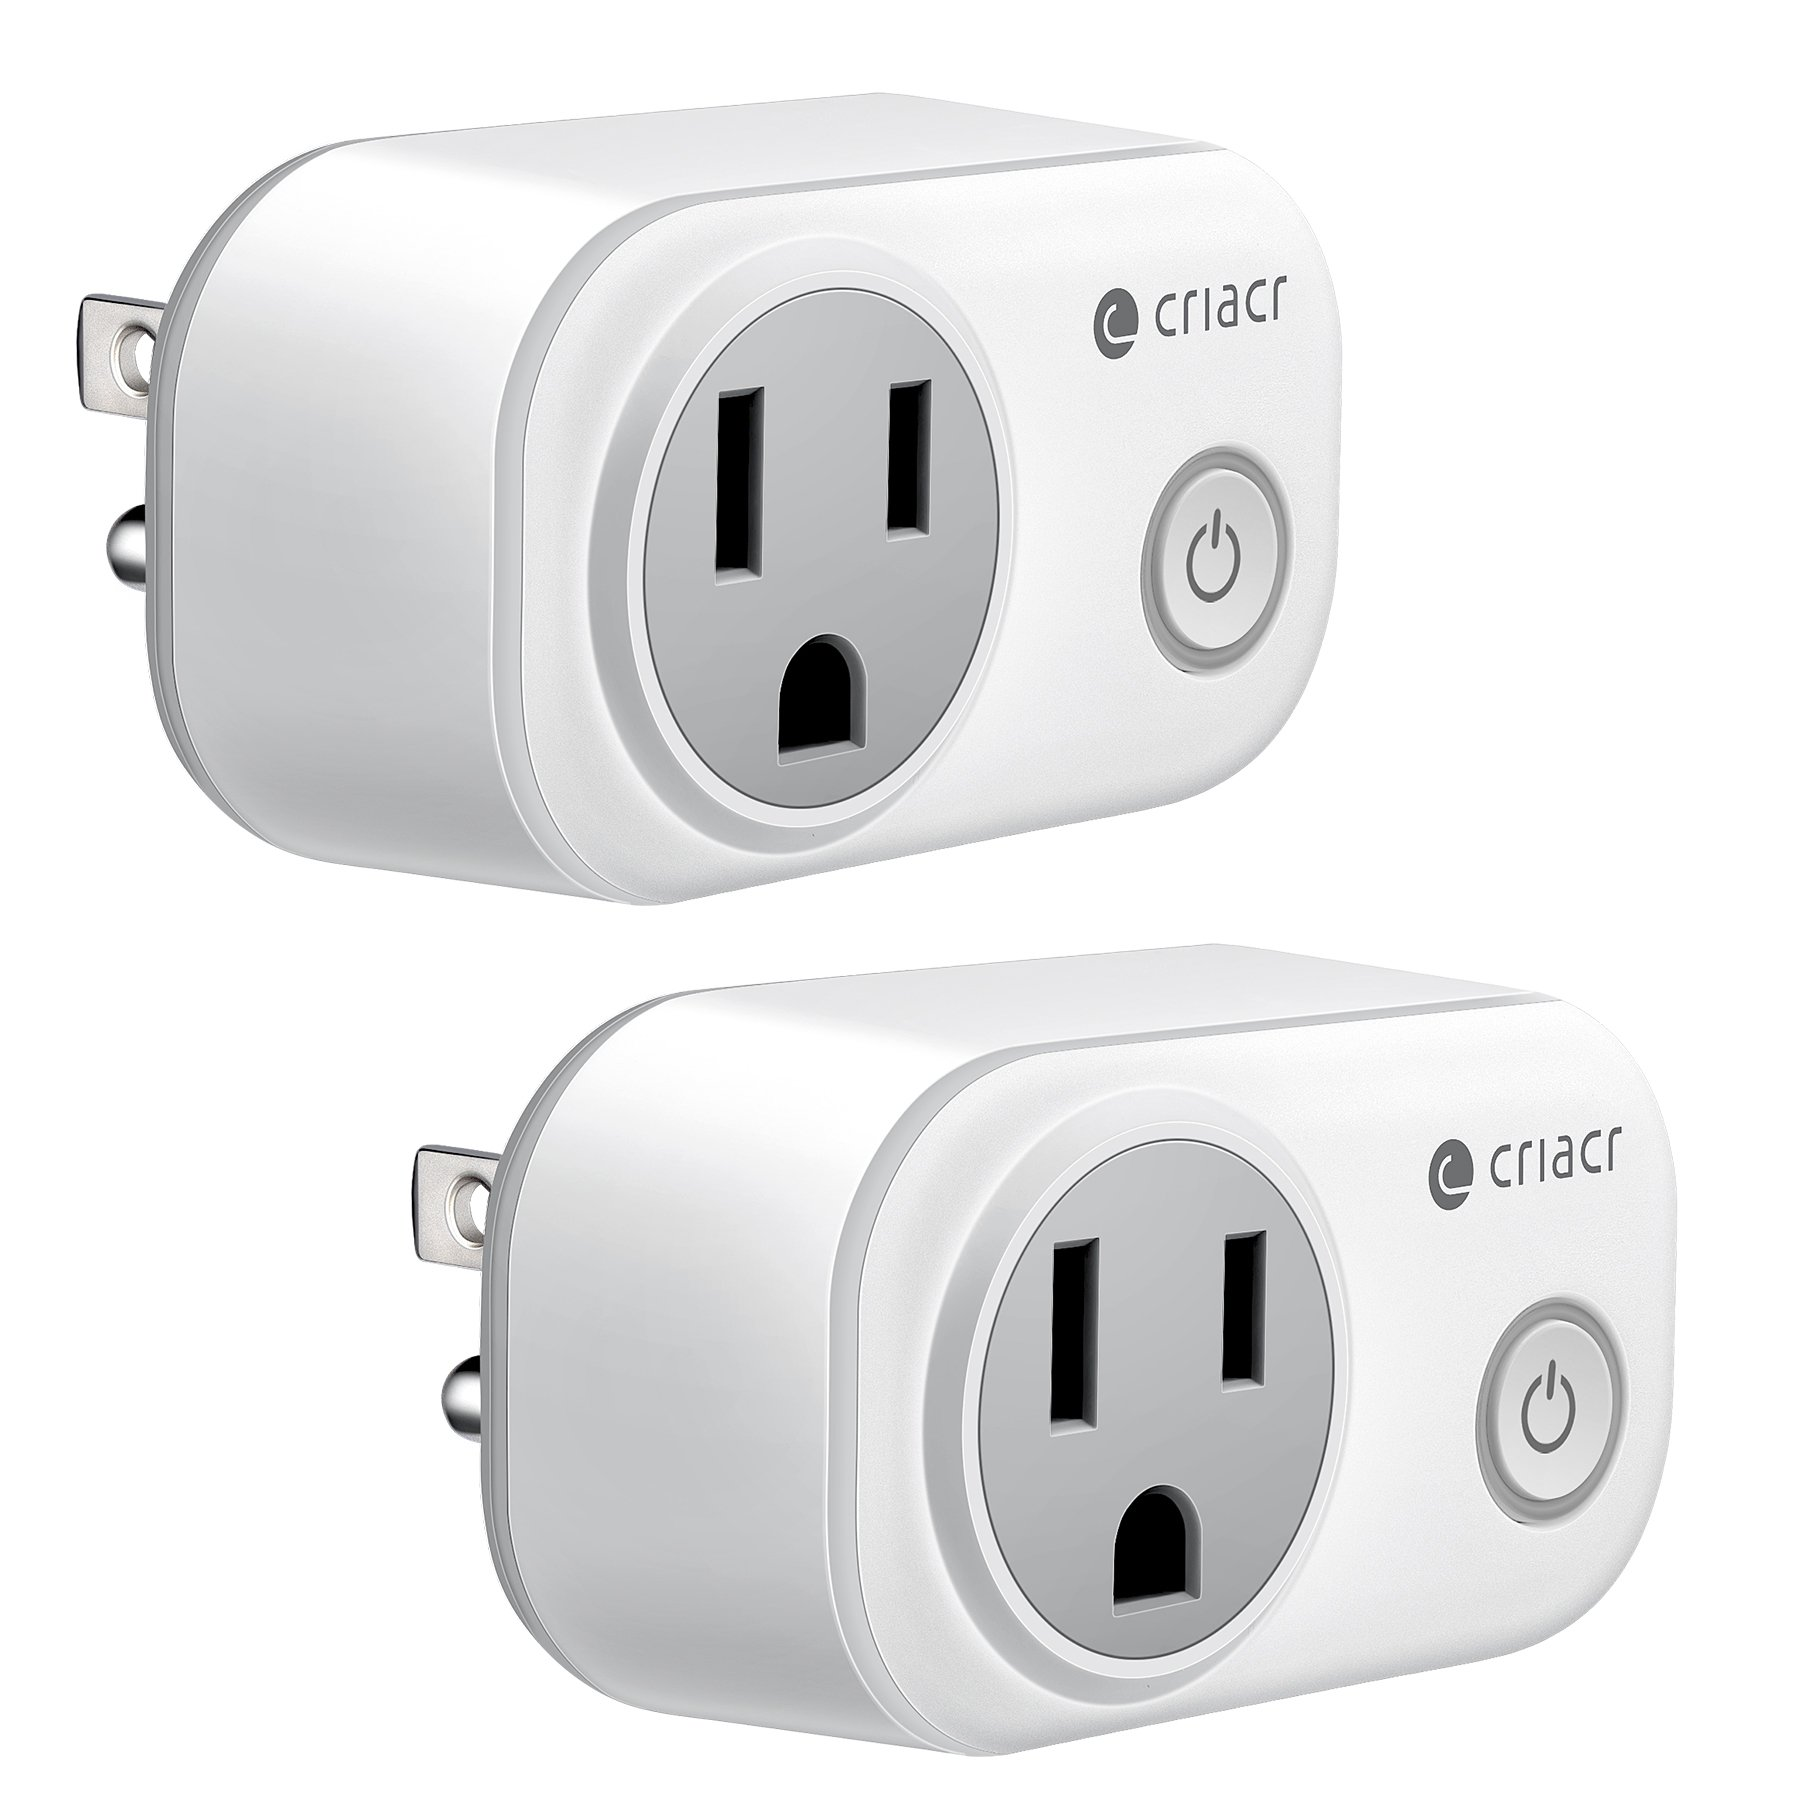 Criacr Smart Plug, WiFi Wireless Control Mini Sockets with Energy Monitoring, Timing Function, Work with Amazon Alexa and Google Home, Remote Control by Smartphone from Anywhere (2 PACK, White)